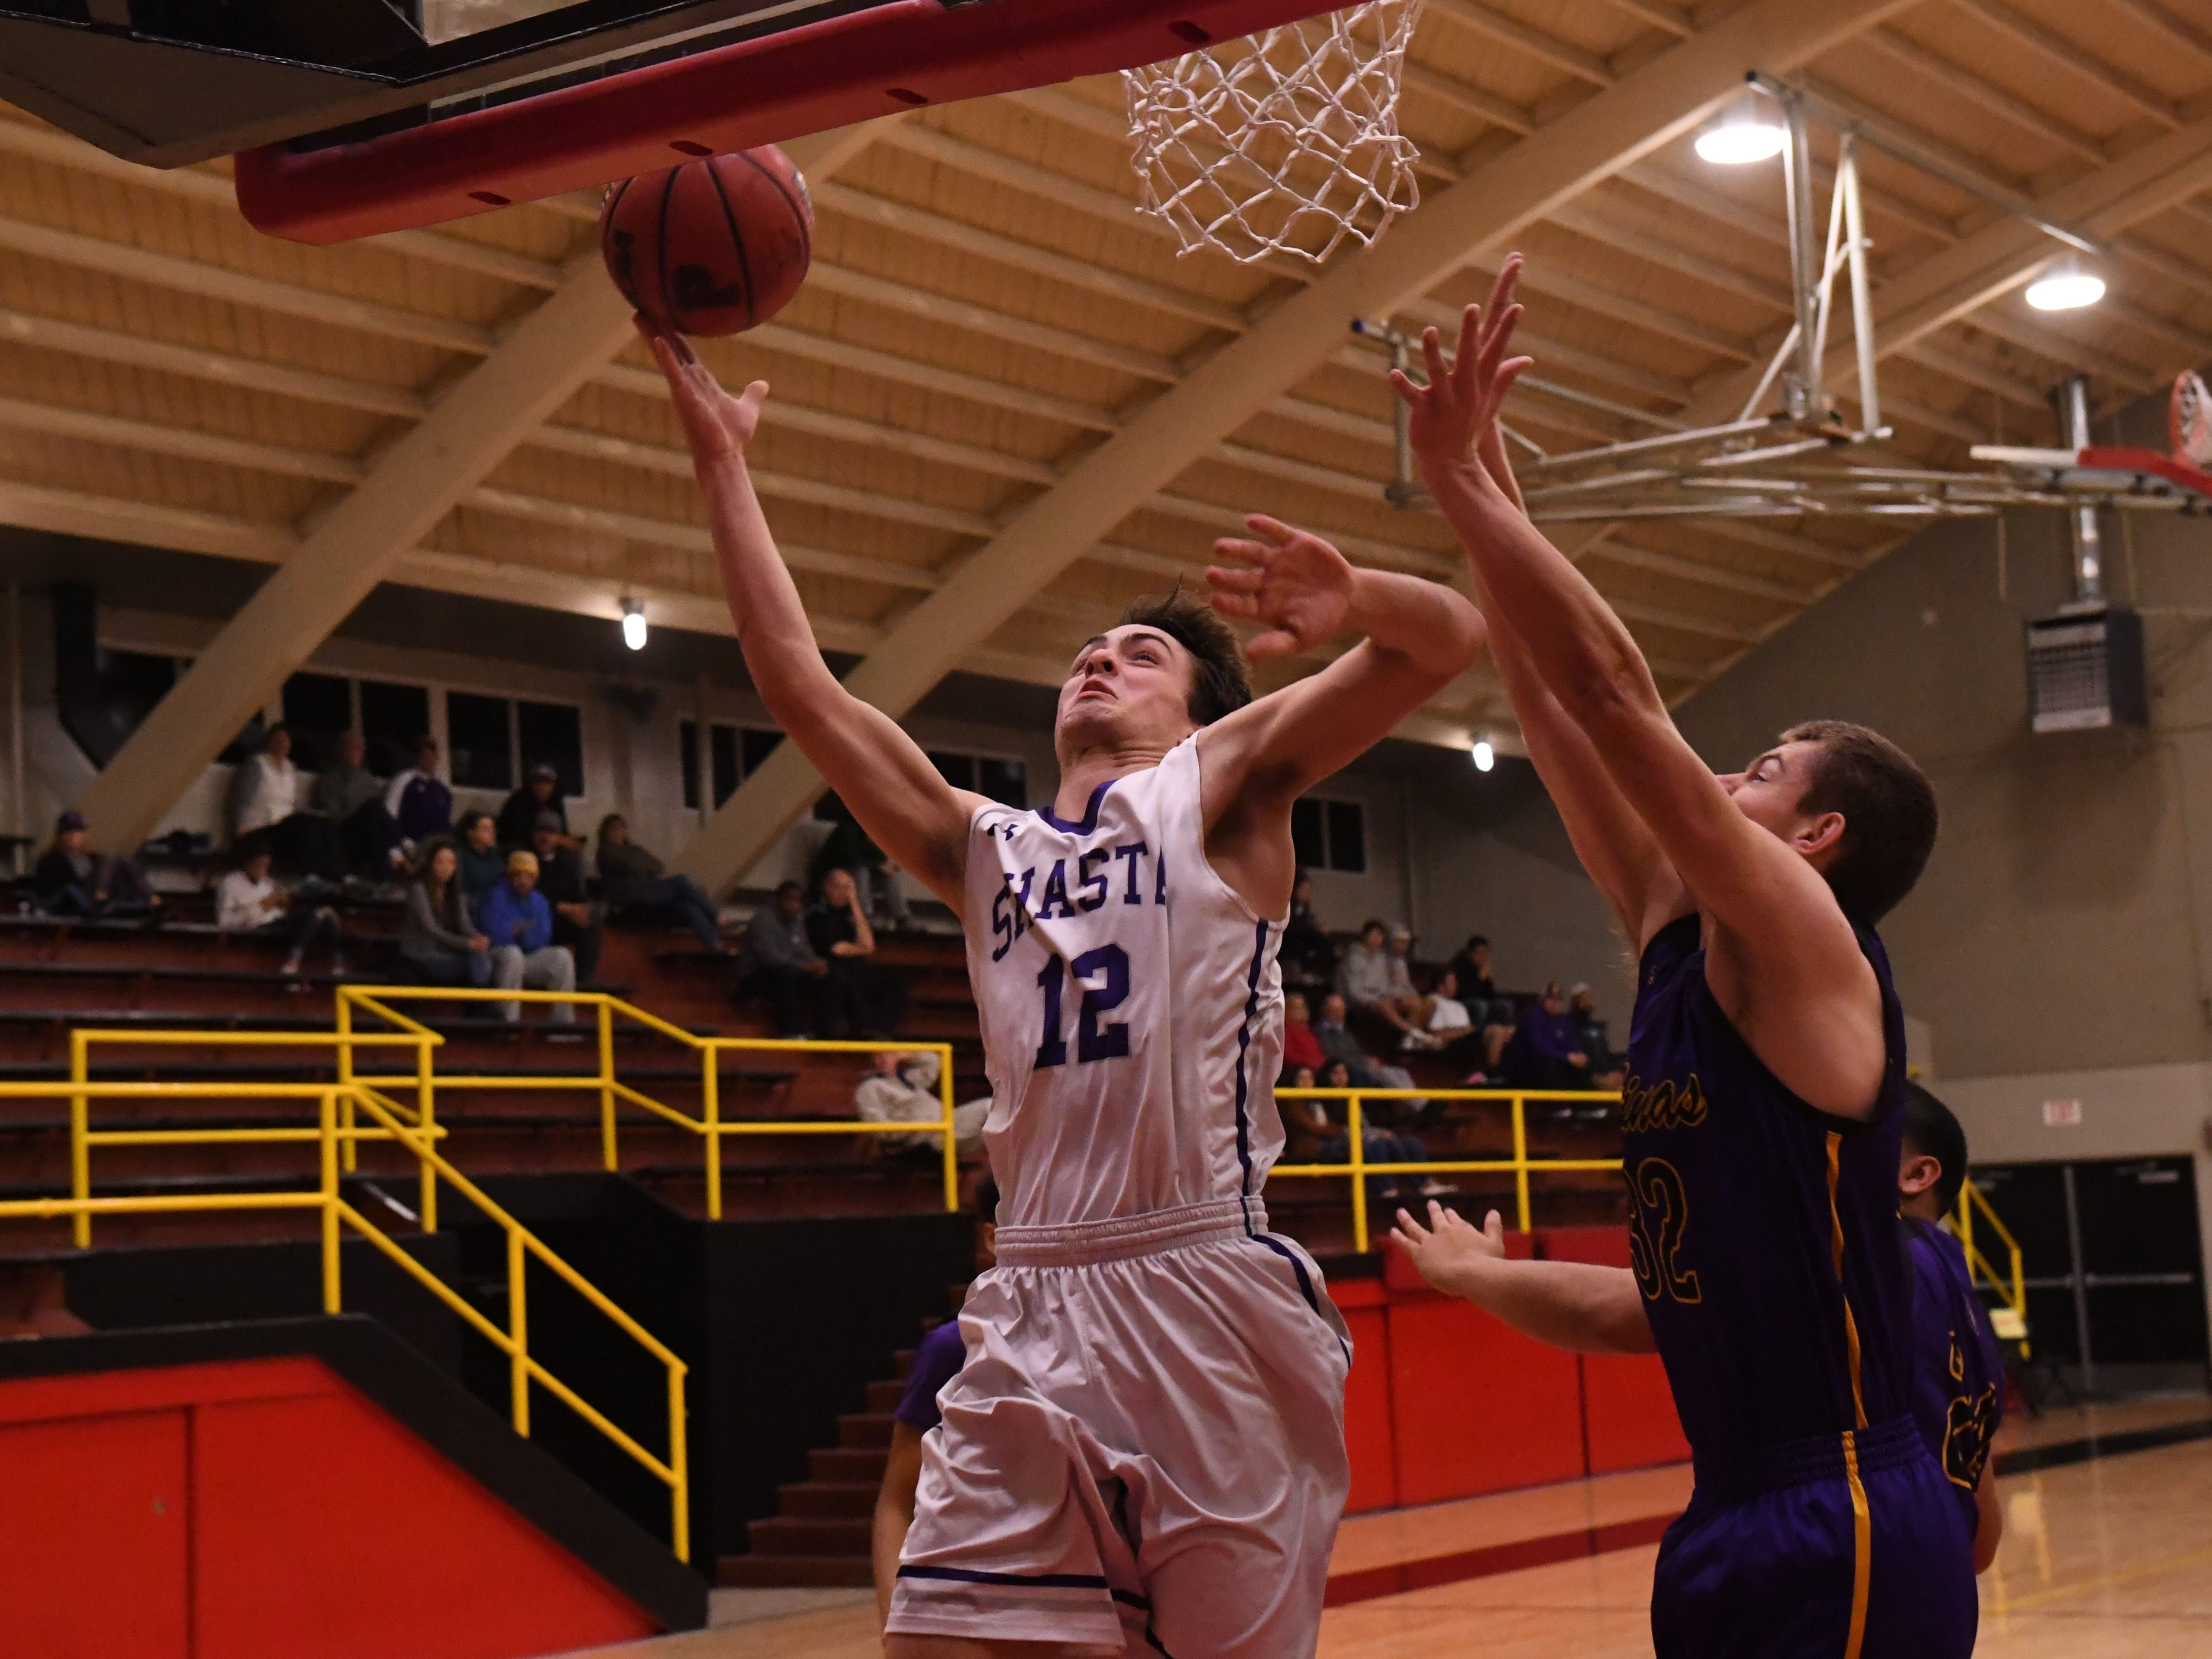 Shasta forward Cade Corontzos (12) lays up a shot in the second quarter.